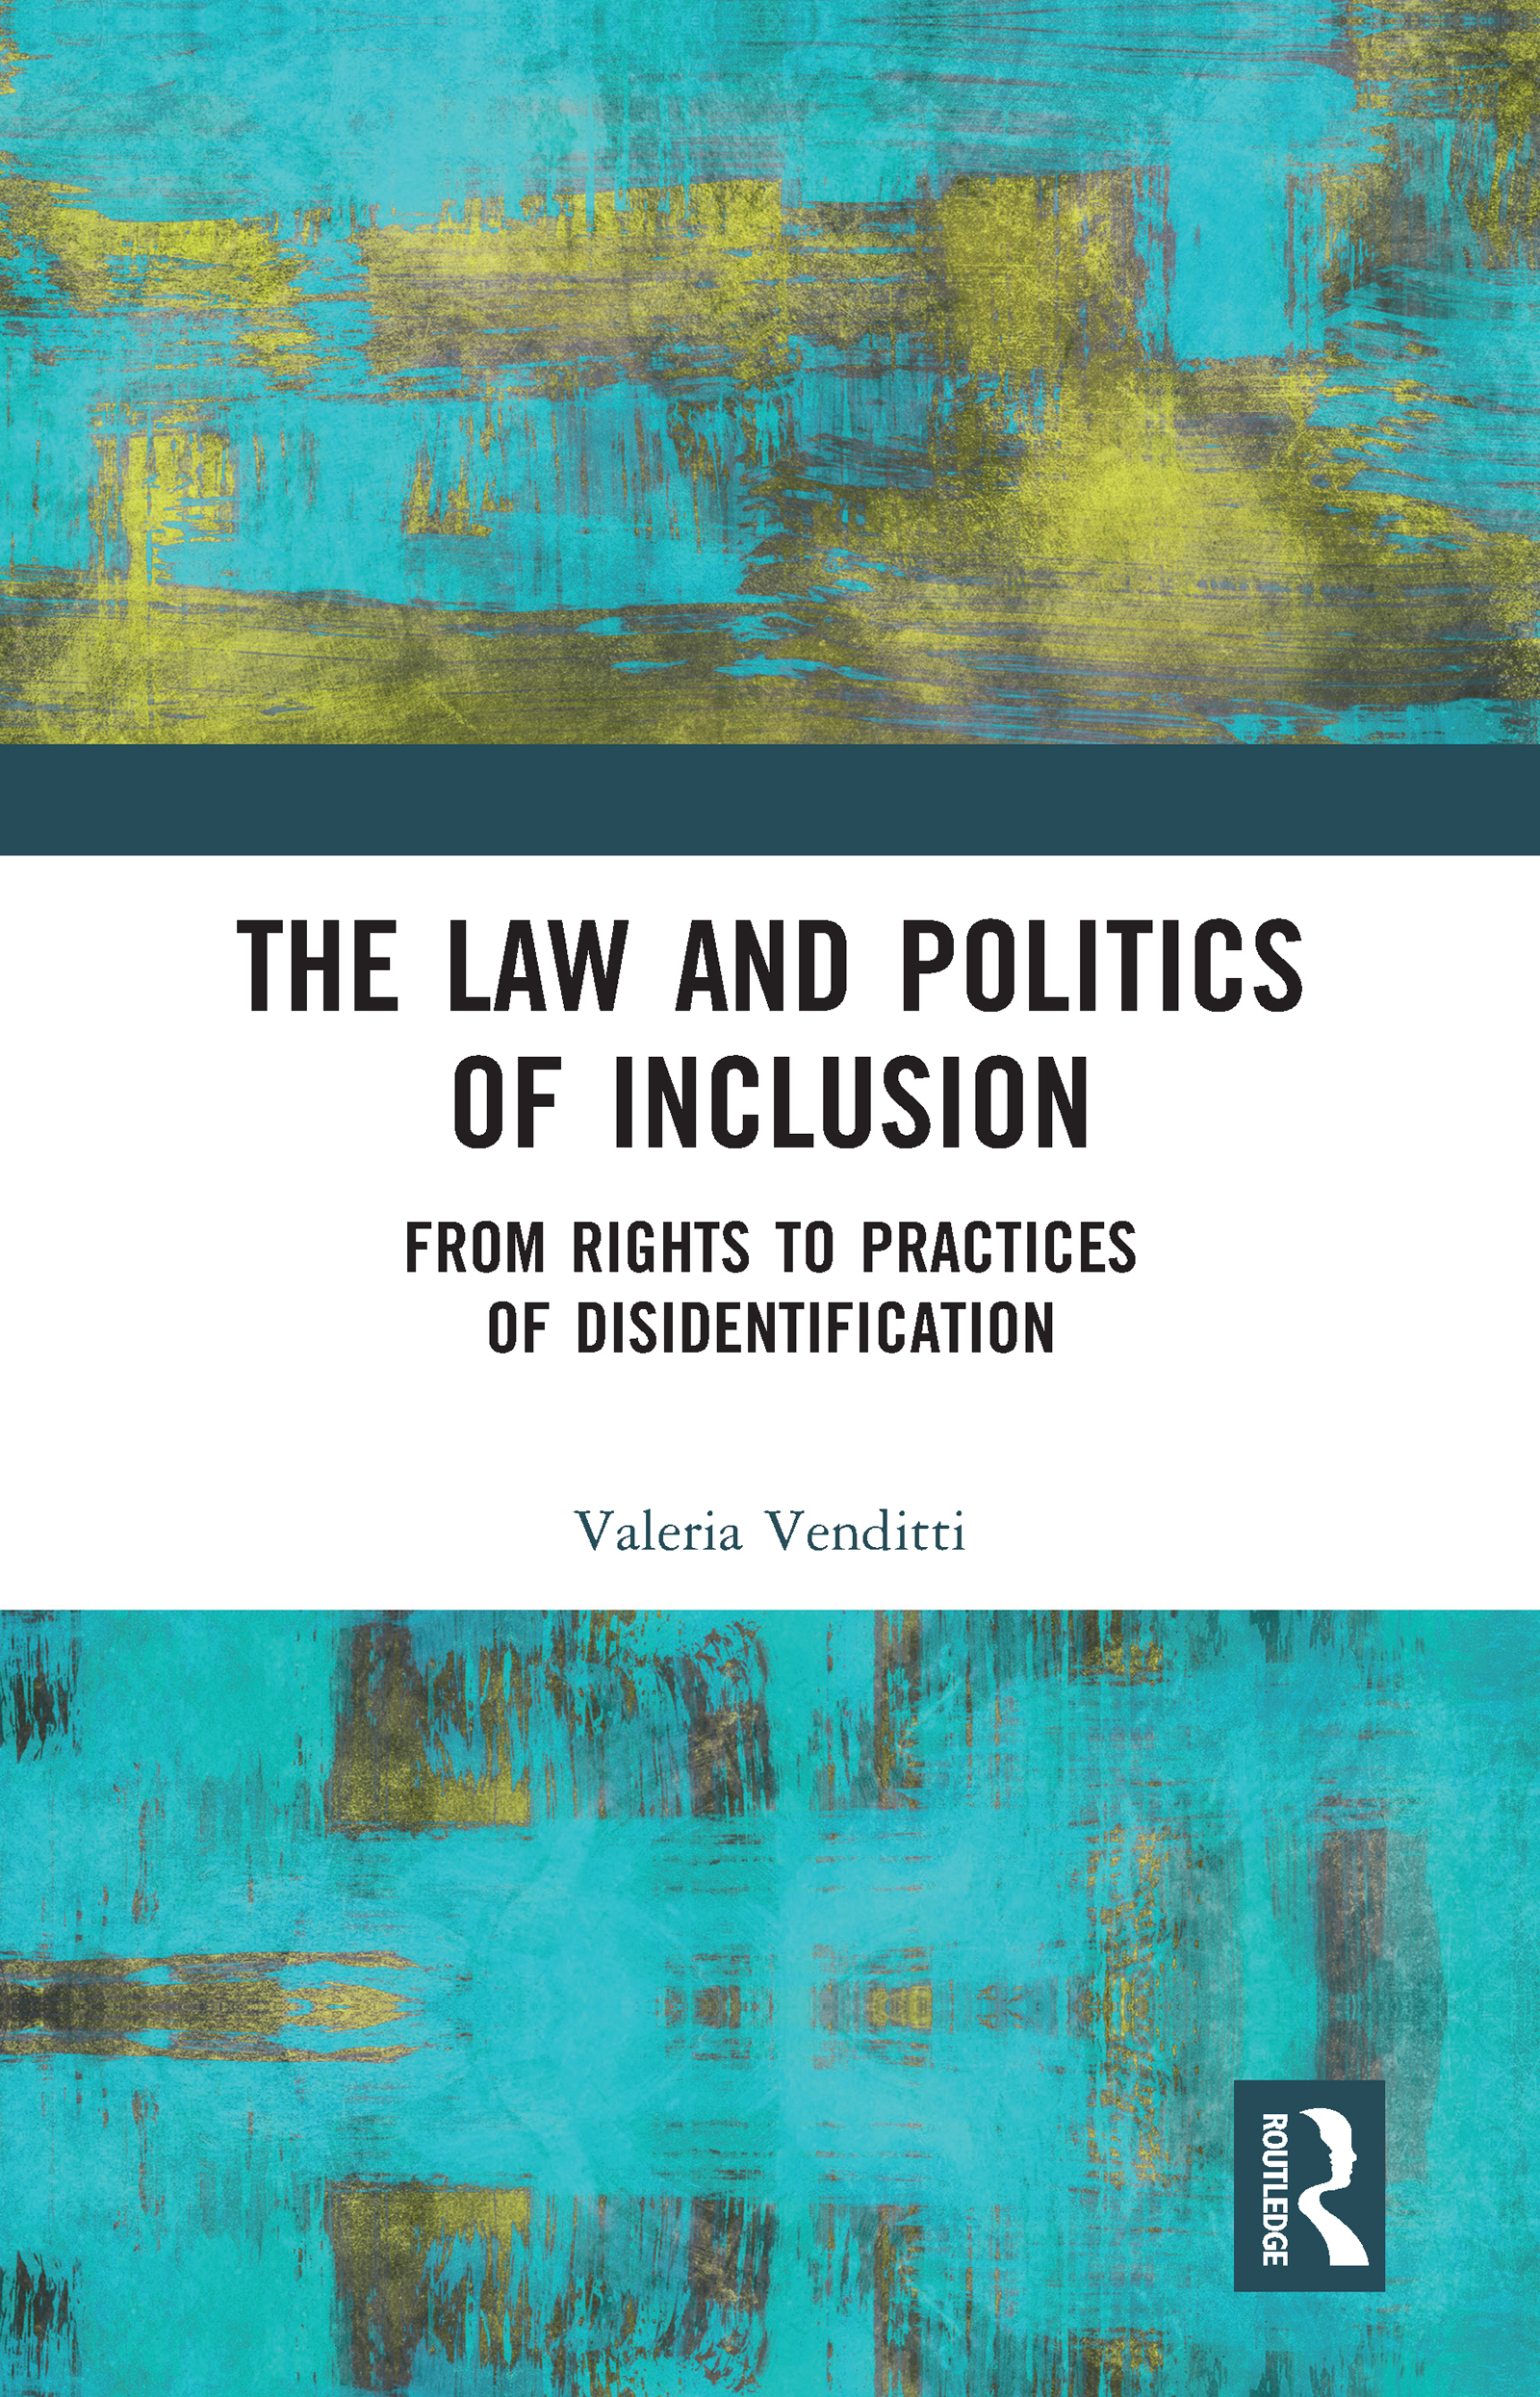 The Law and Politics of Inclusion